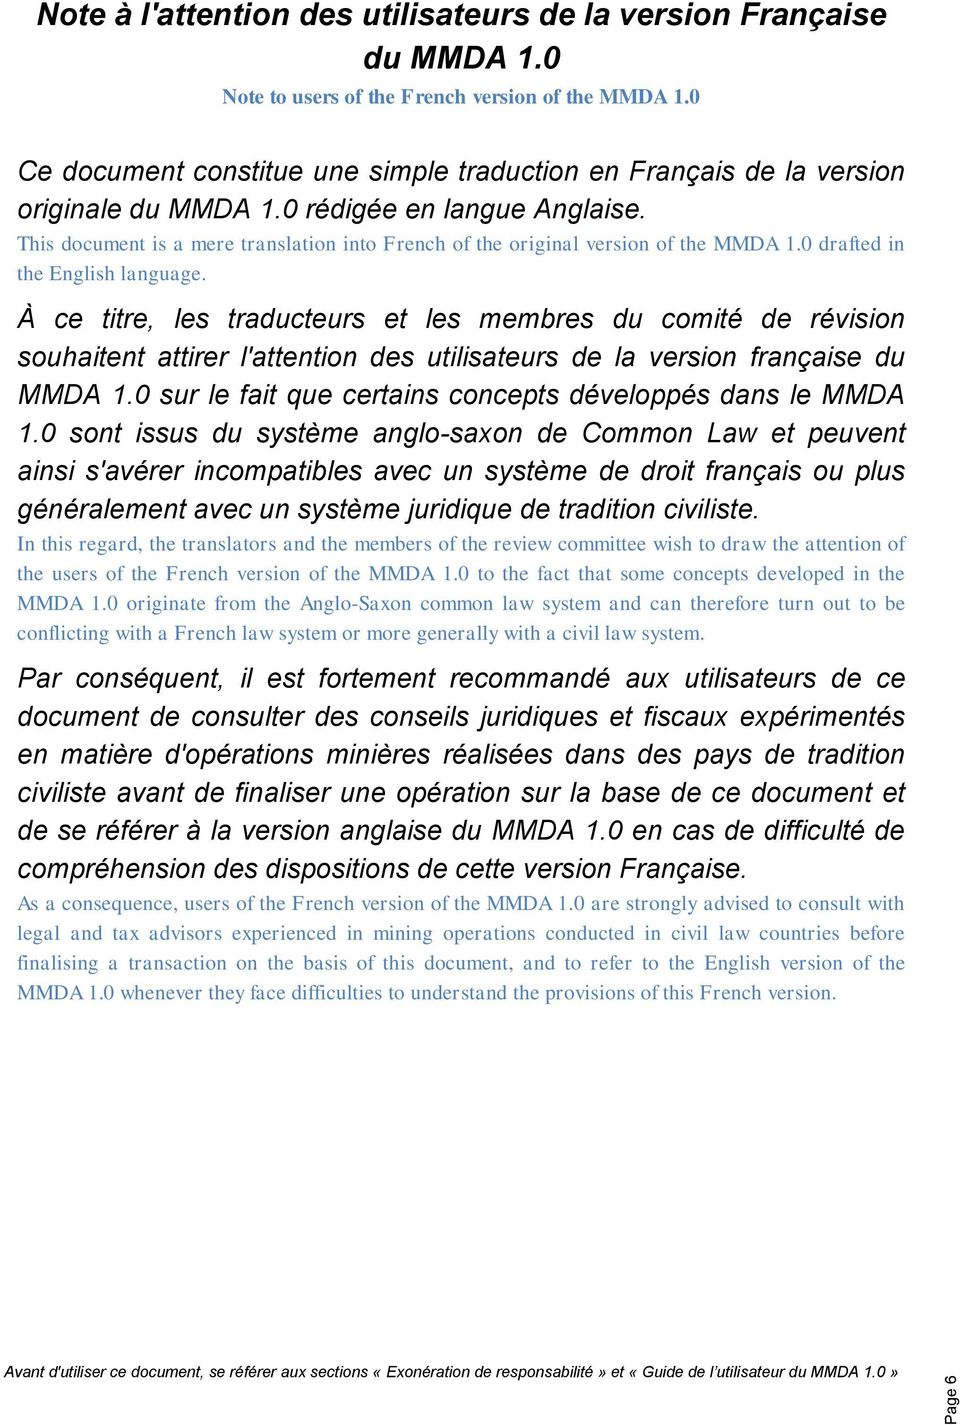 This document is a mere translation into French of the original version of the MMDA 1.0 drafted in the English language.